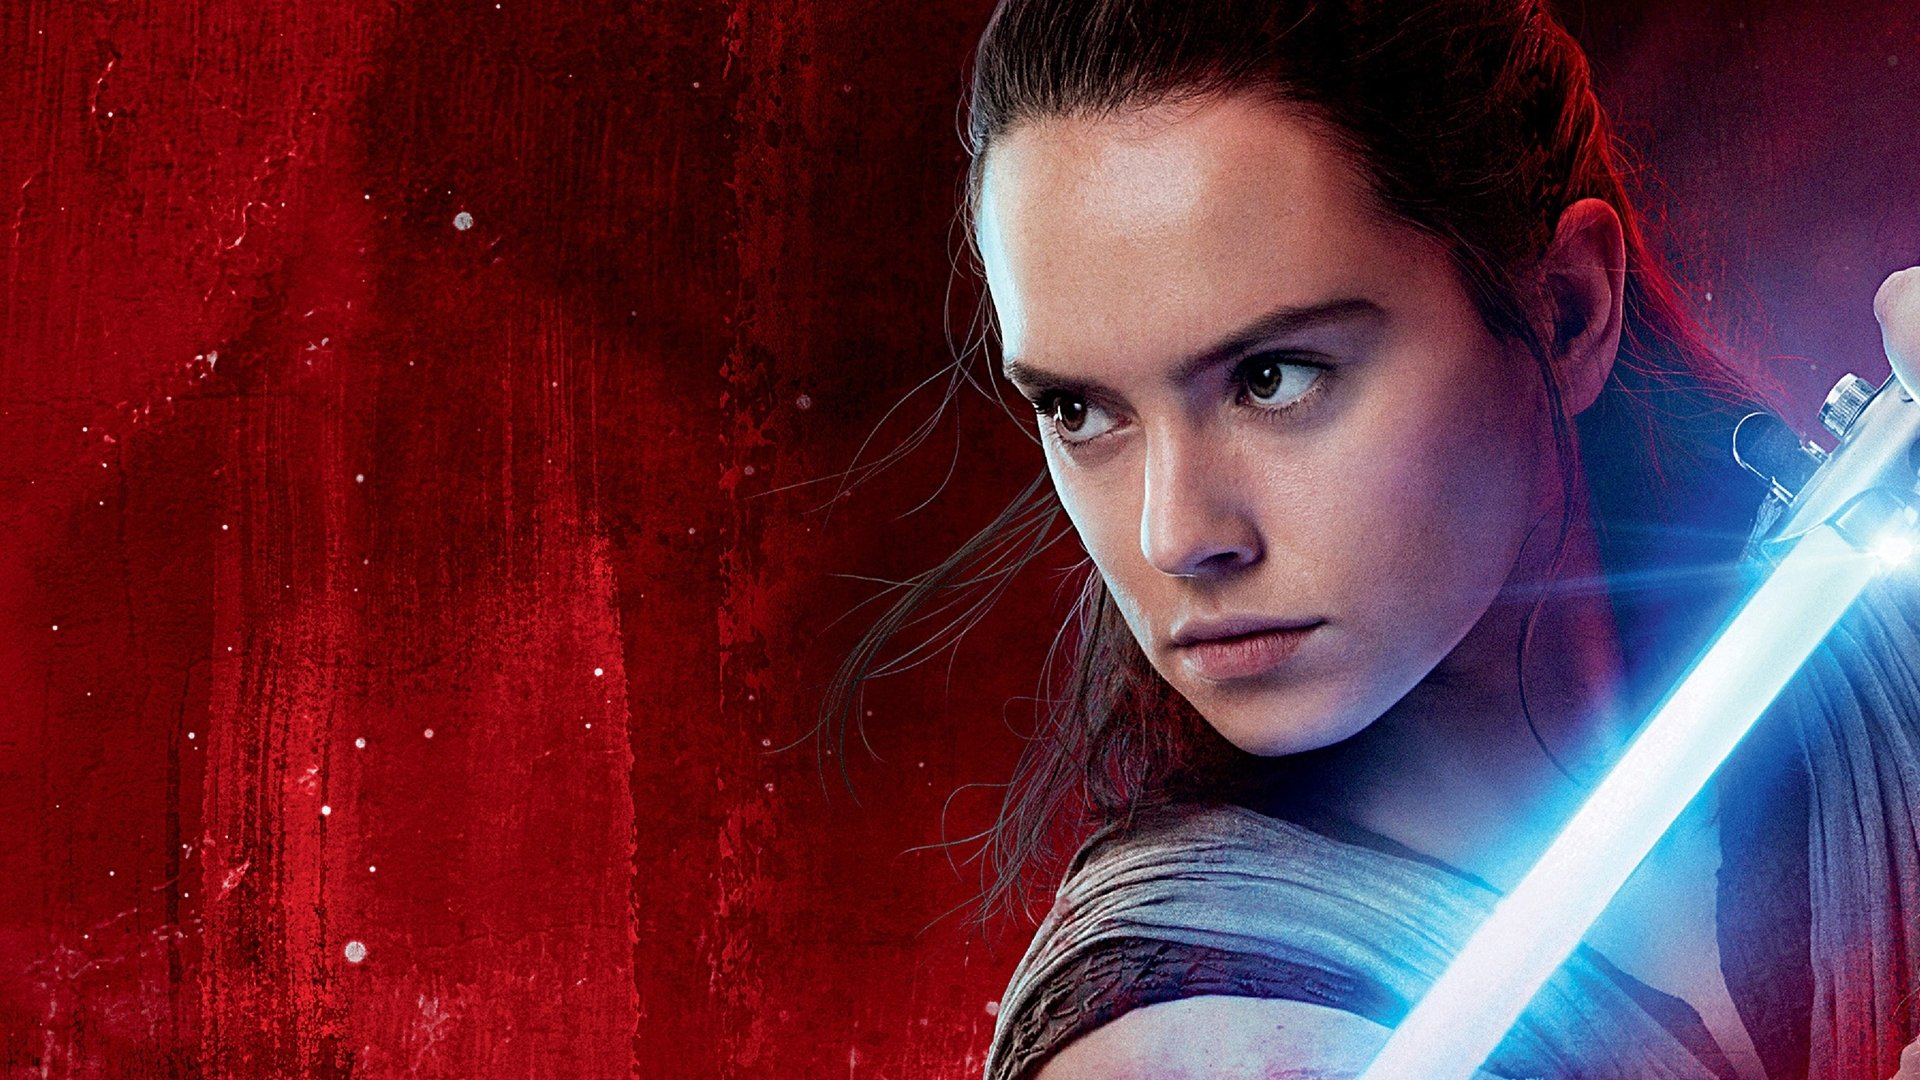 126 Star Wars The Last Jedi Hd Wallpapers Background Images Wallpaper Abyss Page 3